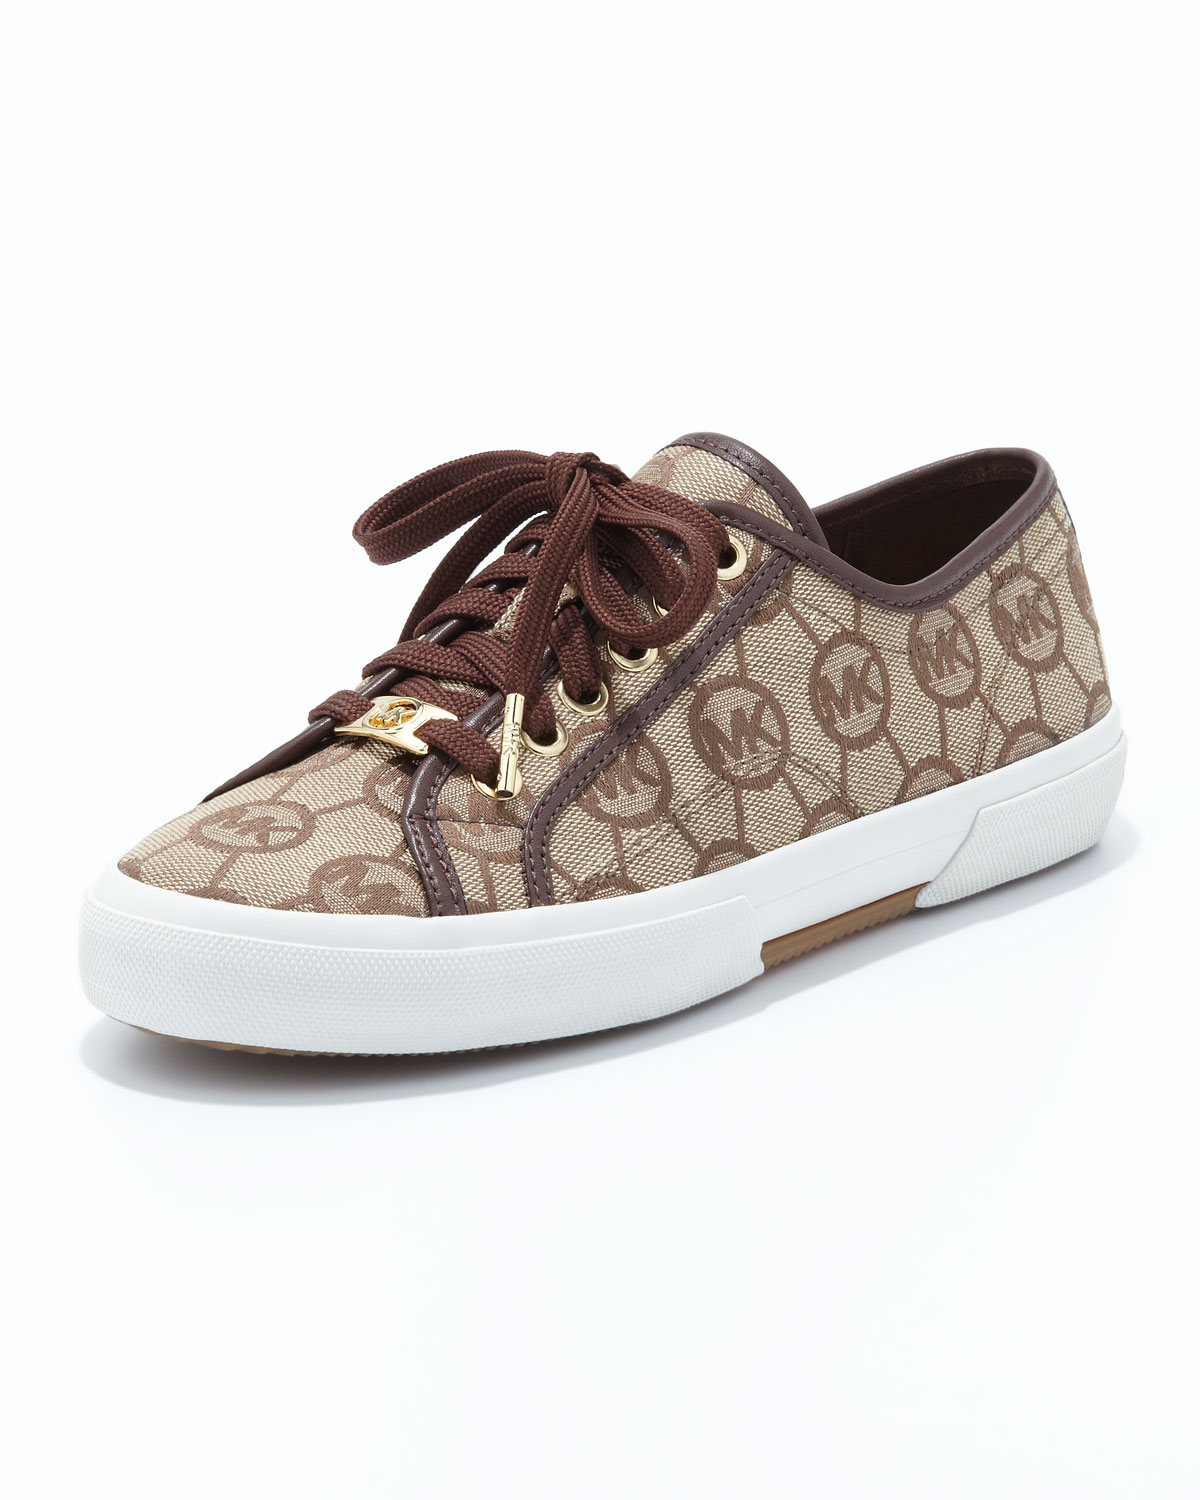 Michael Kors Monogram sneakers